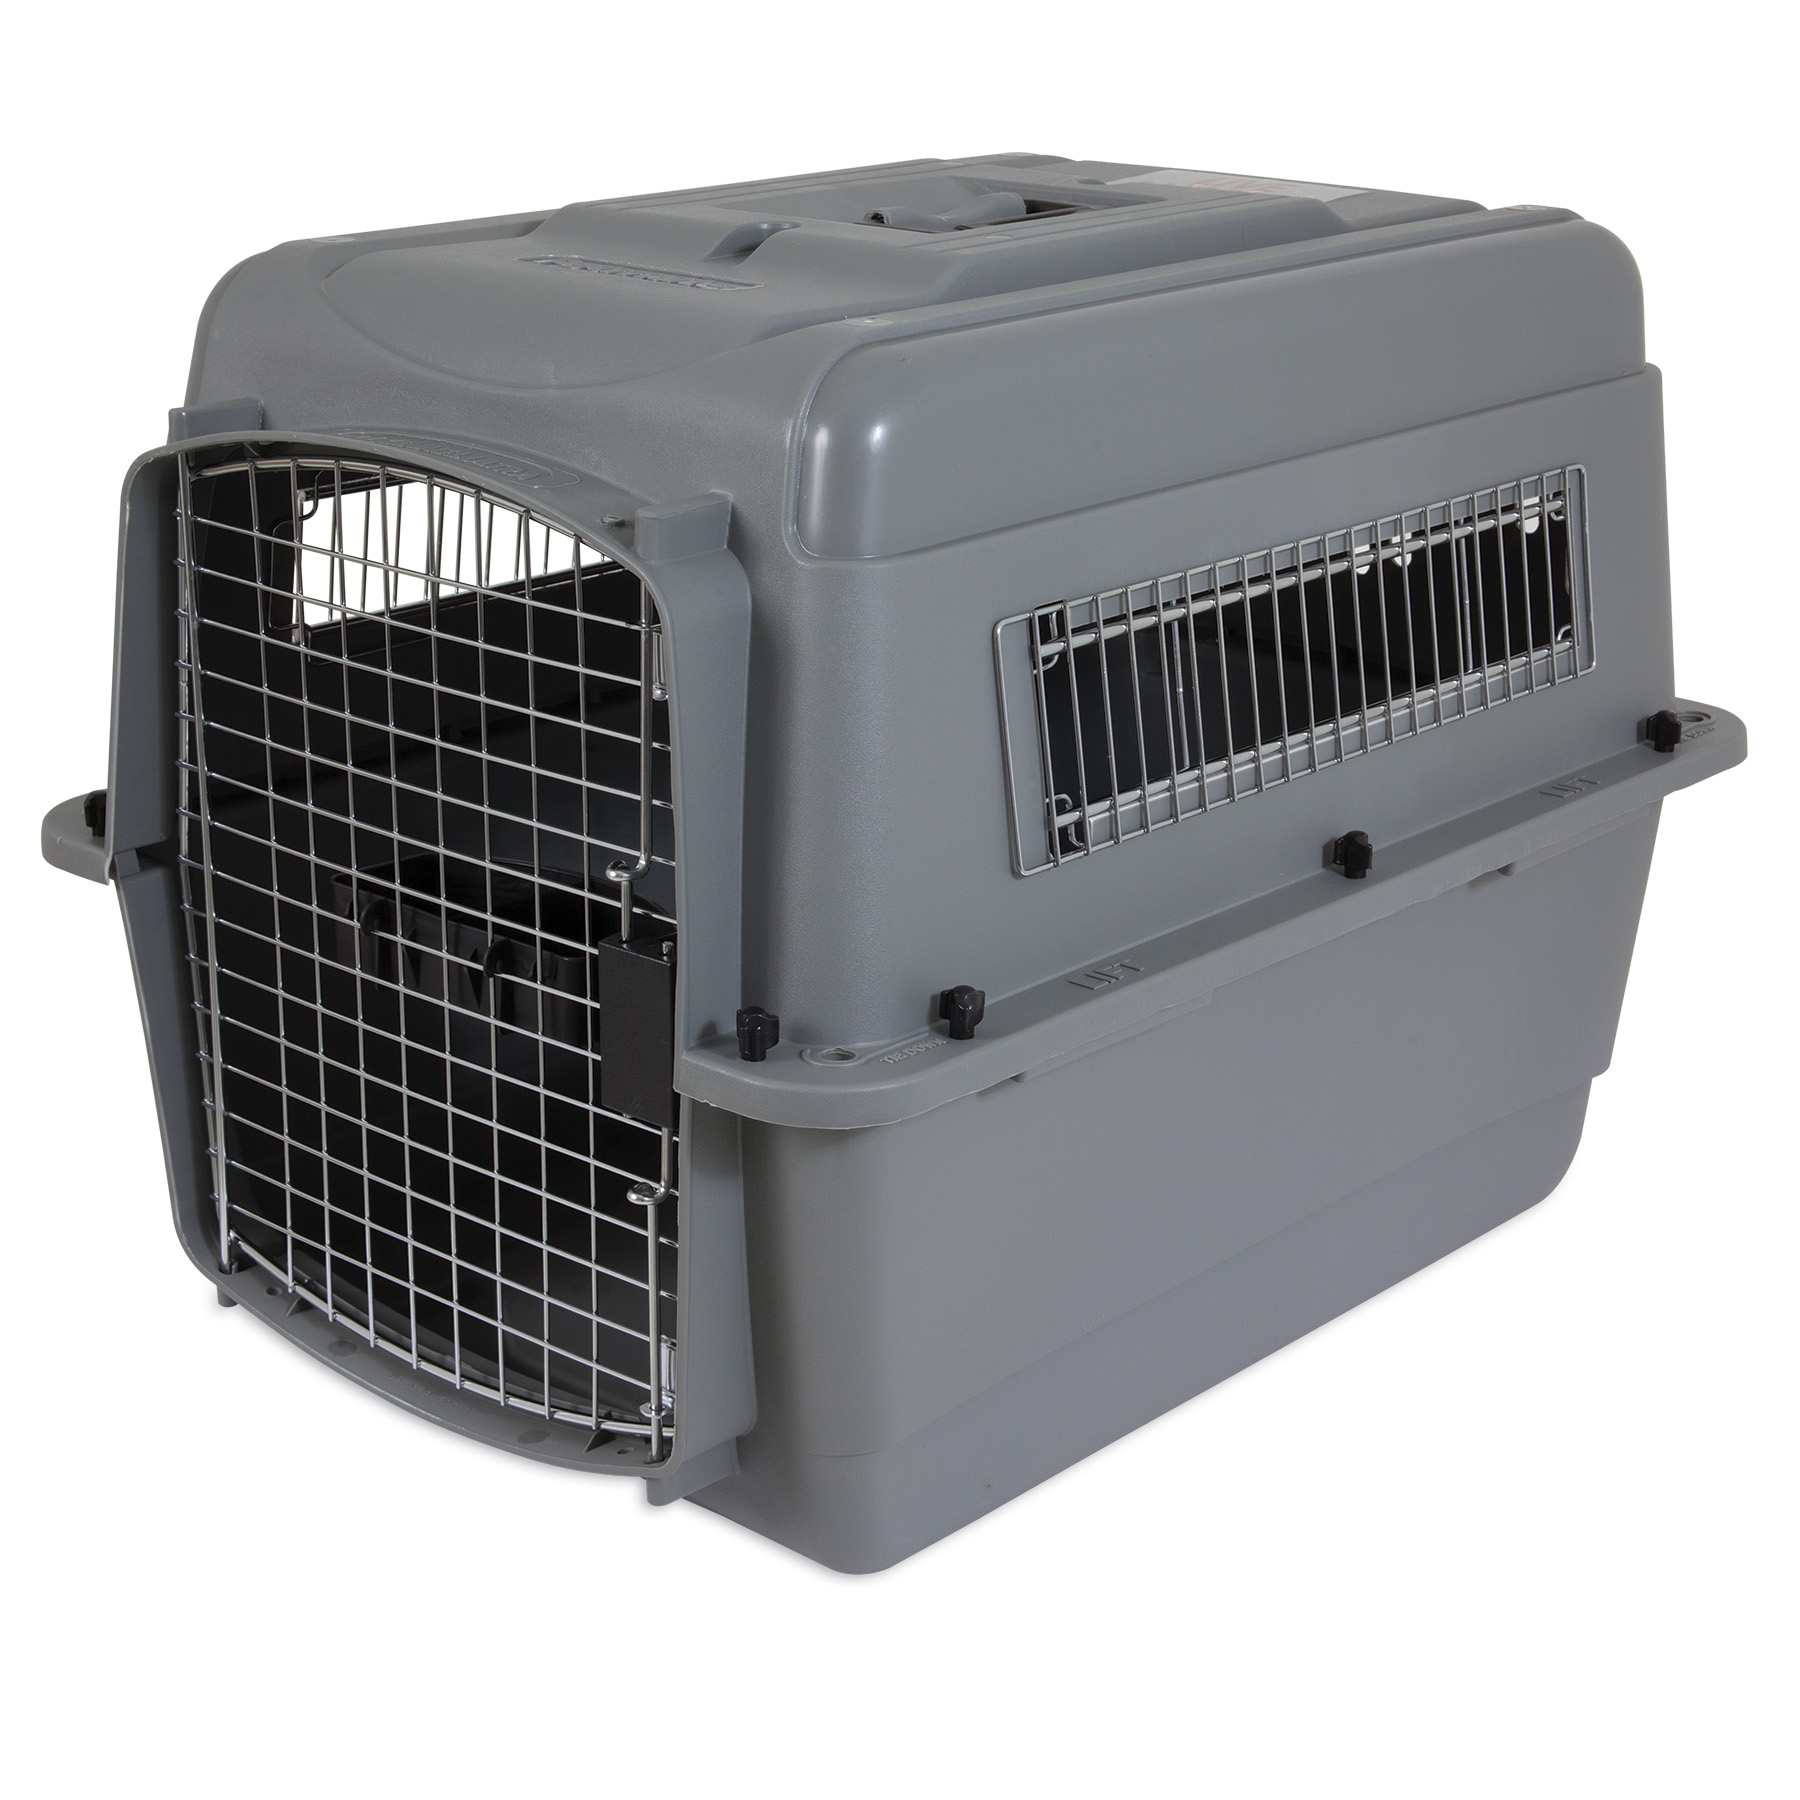 00200_PM_SkyKennel_25to30lbs_3qtr.jpg